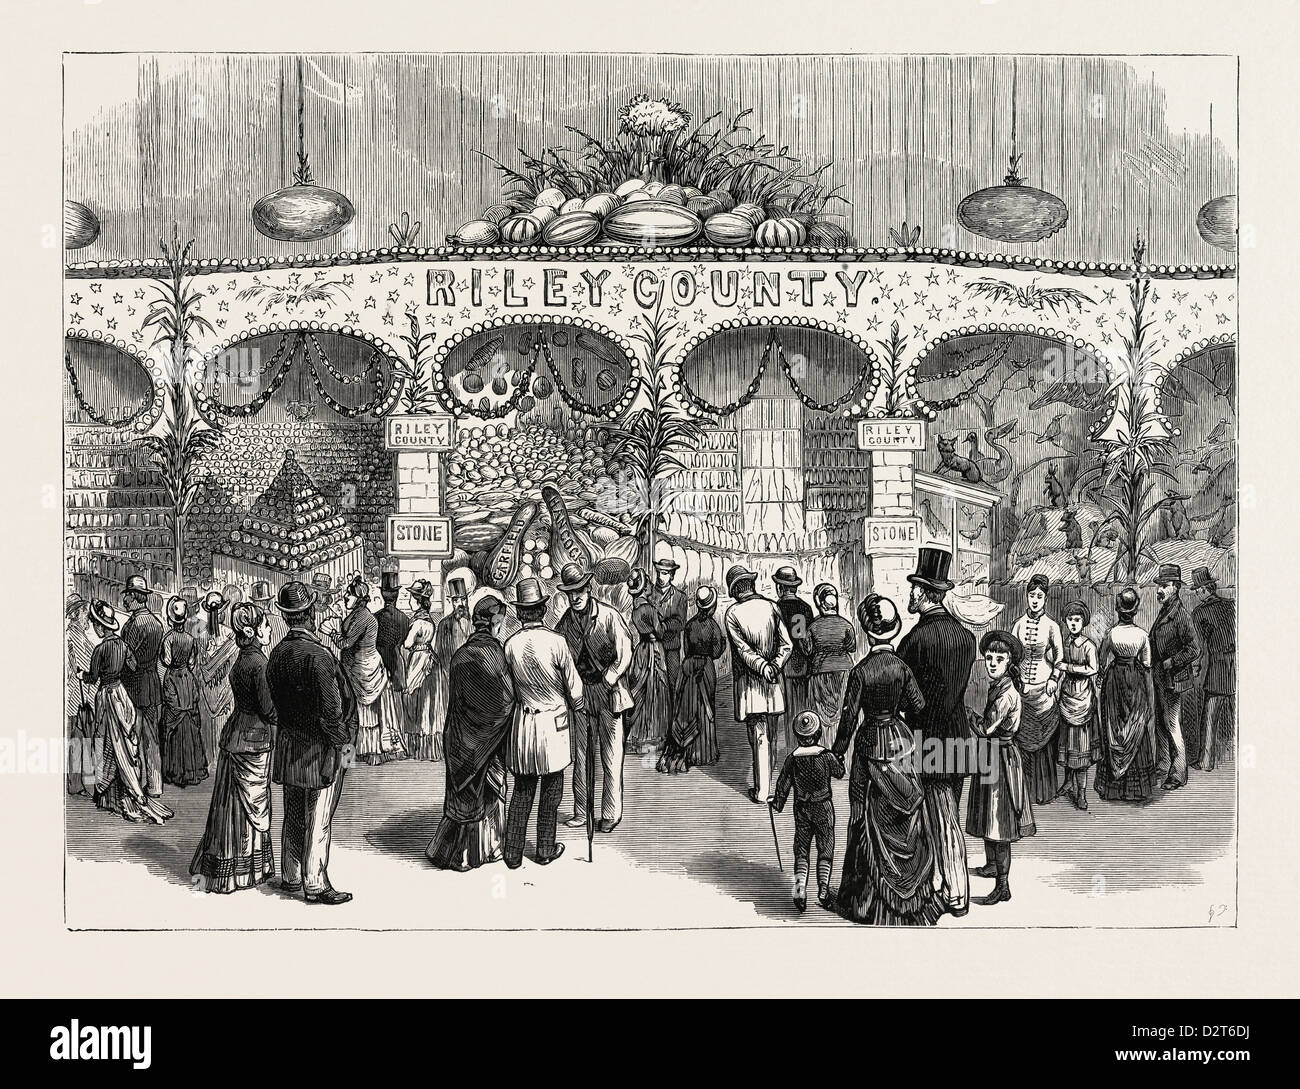 KANSAS: THE RILEY COUNTY PRIZE EXHIBIT AT THE WESTERN NATIONAL FAIR, BISMARCK GROVE, LAWRENCE. U.S., engraving 1880 - Stock Image